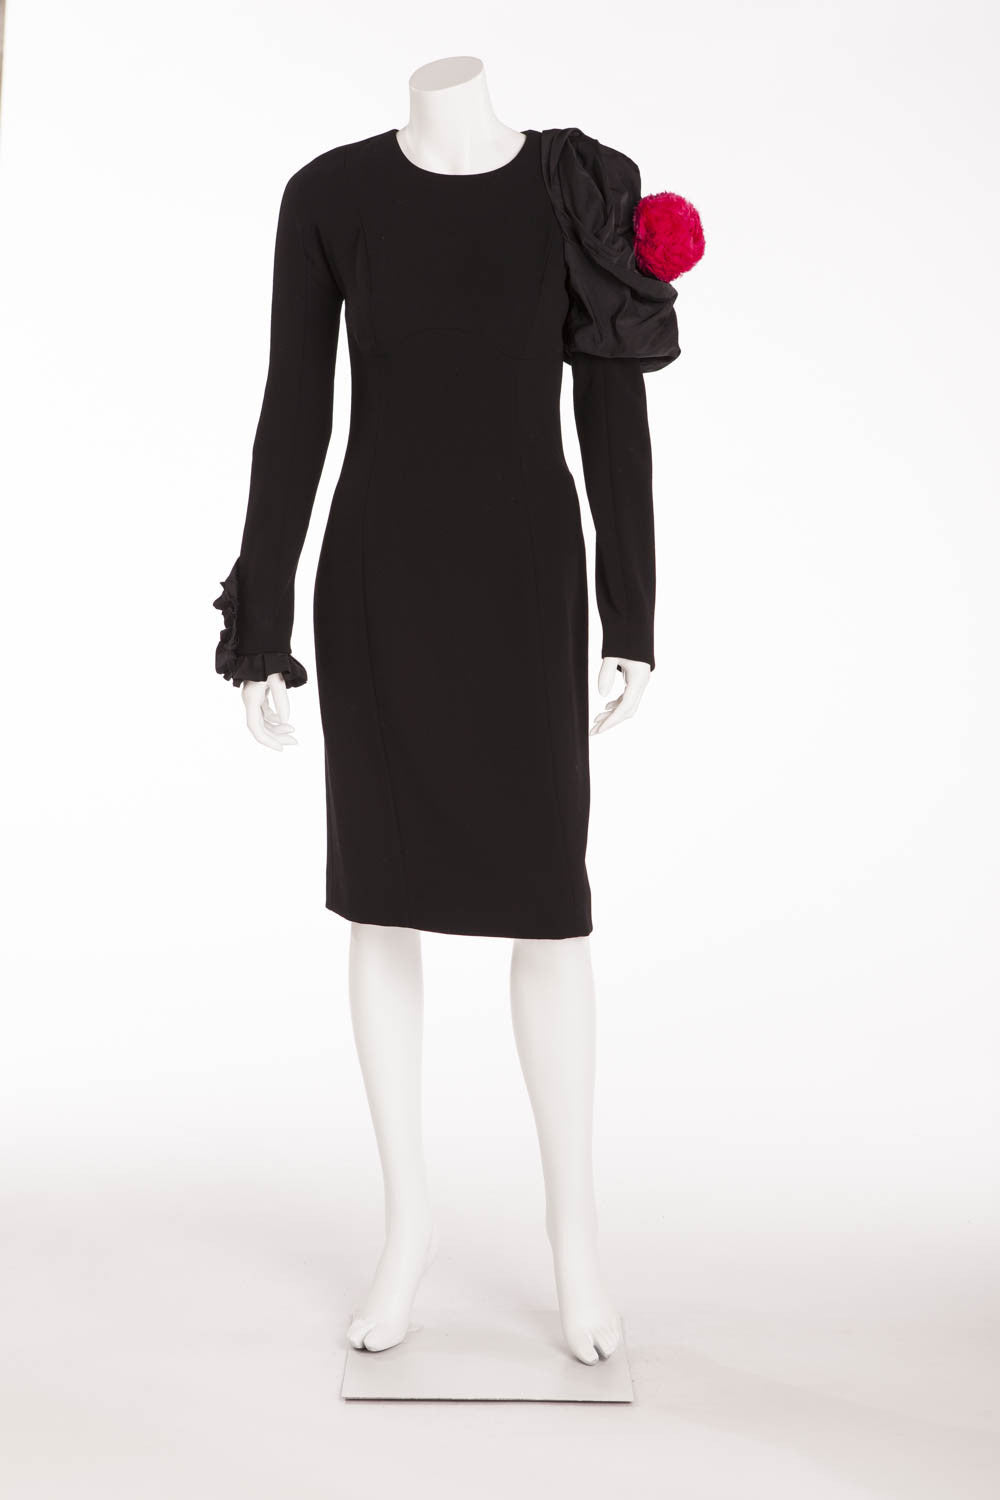 Louis Vuitton - Featured on the 2009 Runway Collection -  New Black Dress with Pink Flower on Shoulder - FR 38